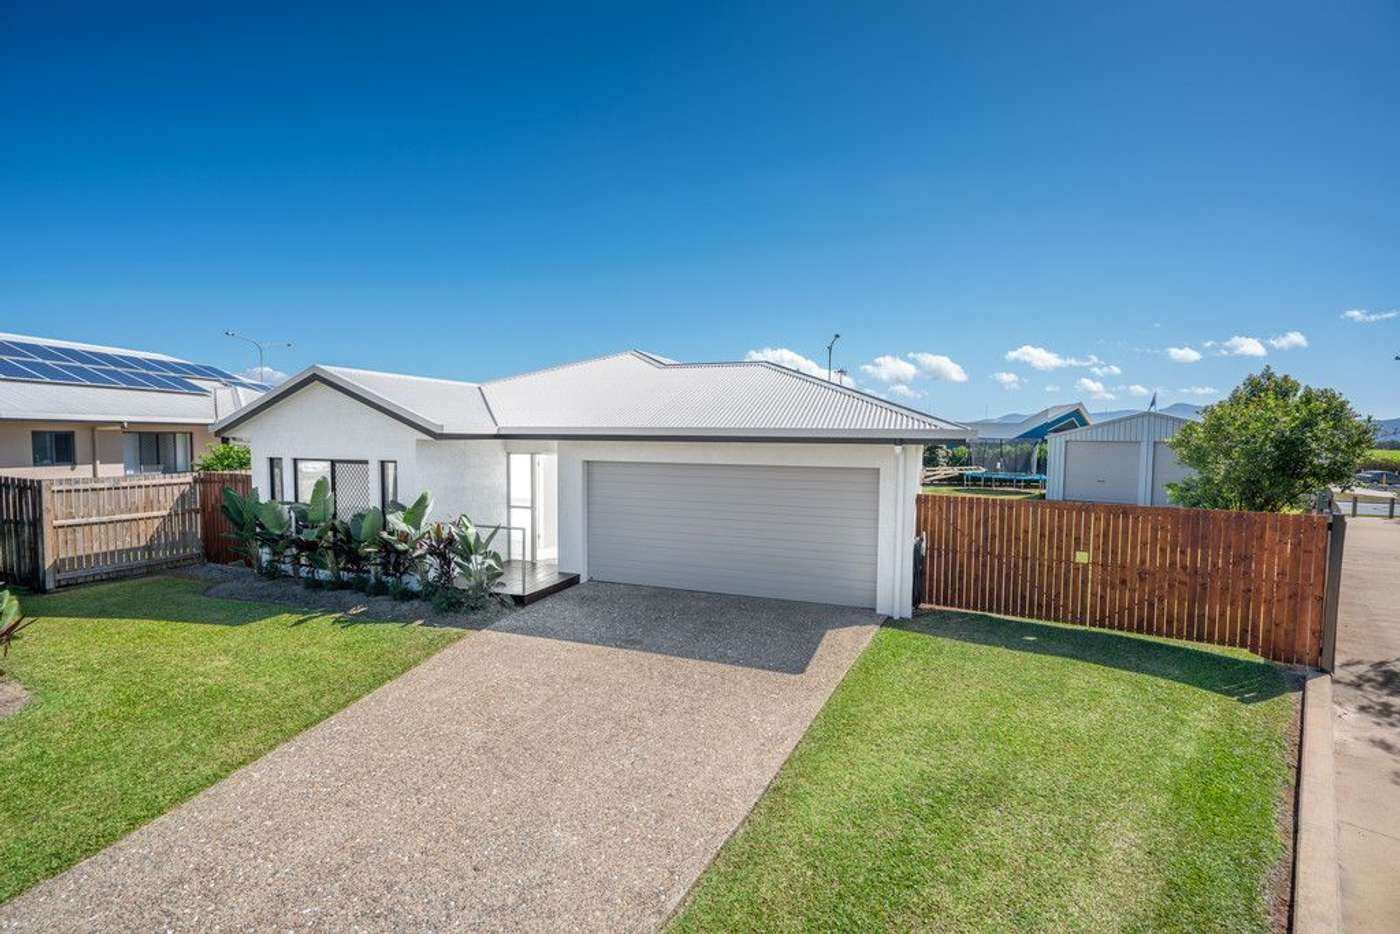 Main view of Homely house listing, 16 Gadd Close, Gordonvale QLD 4865